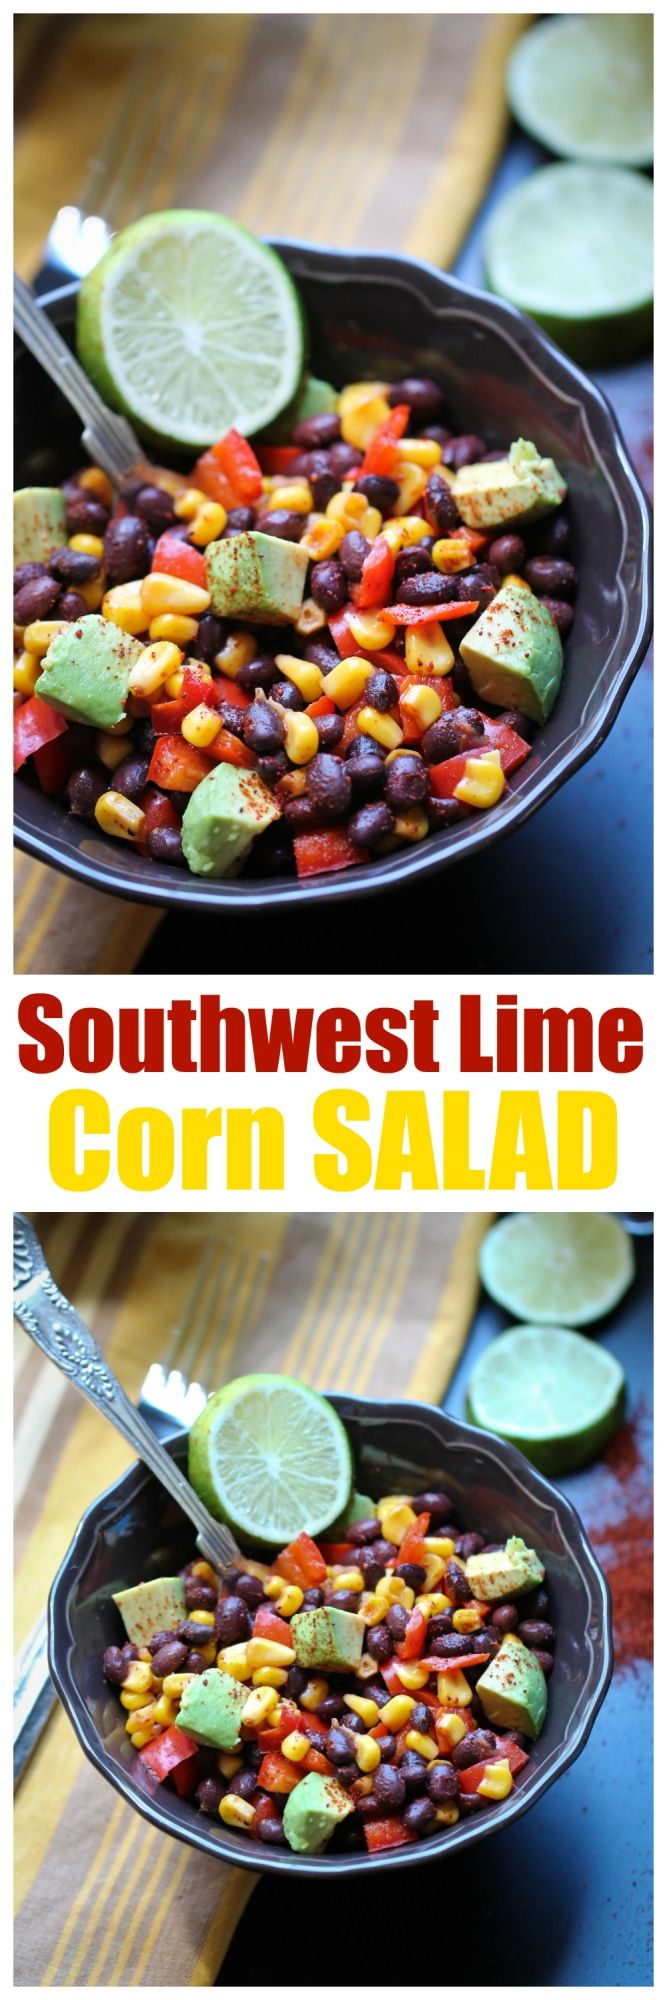 8 Ingredient Southwest Lime Corn Salad! | http://thevegan8.com